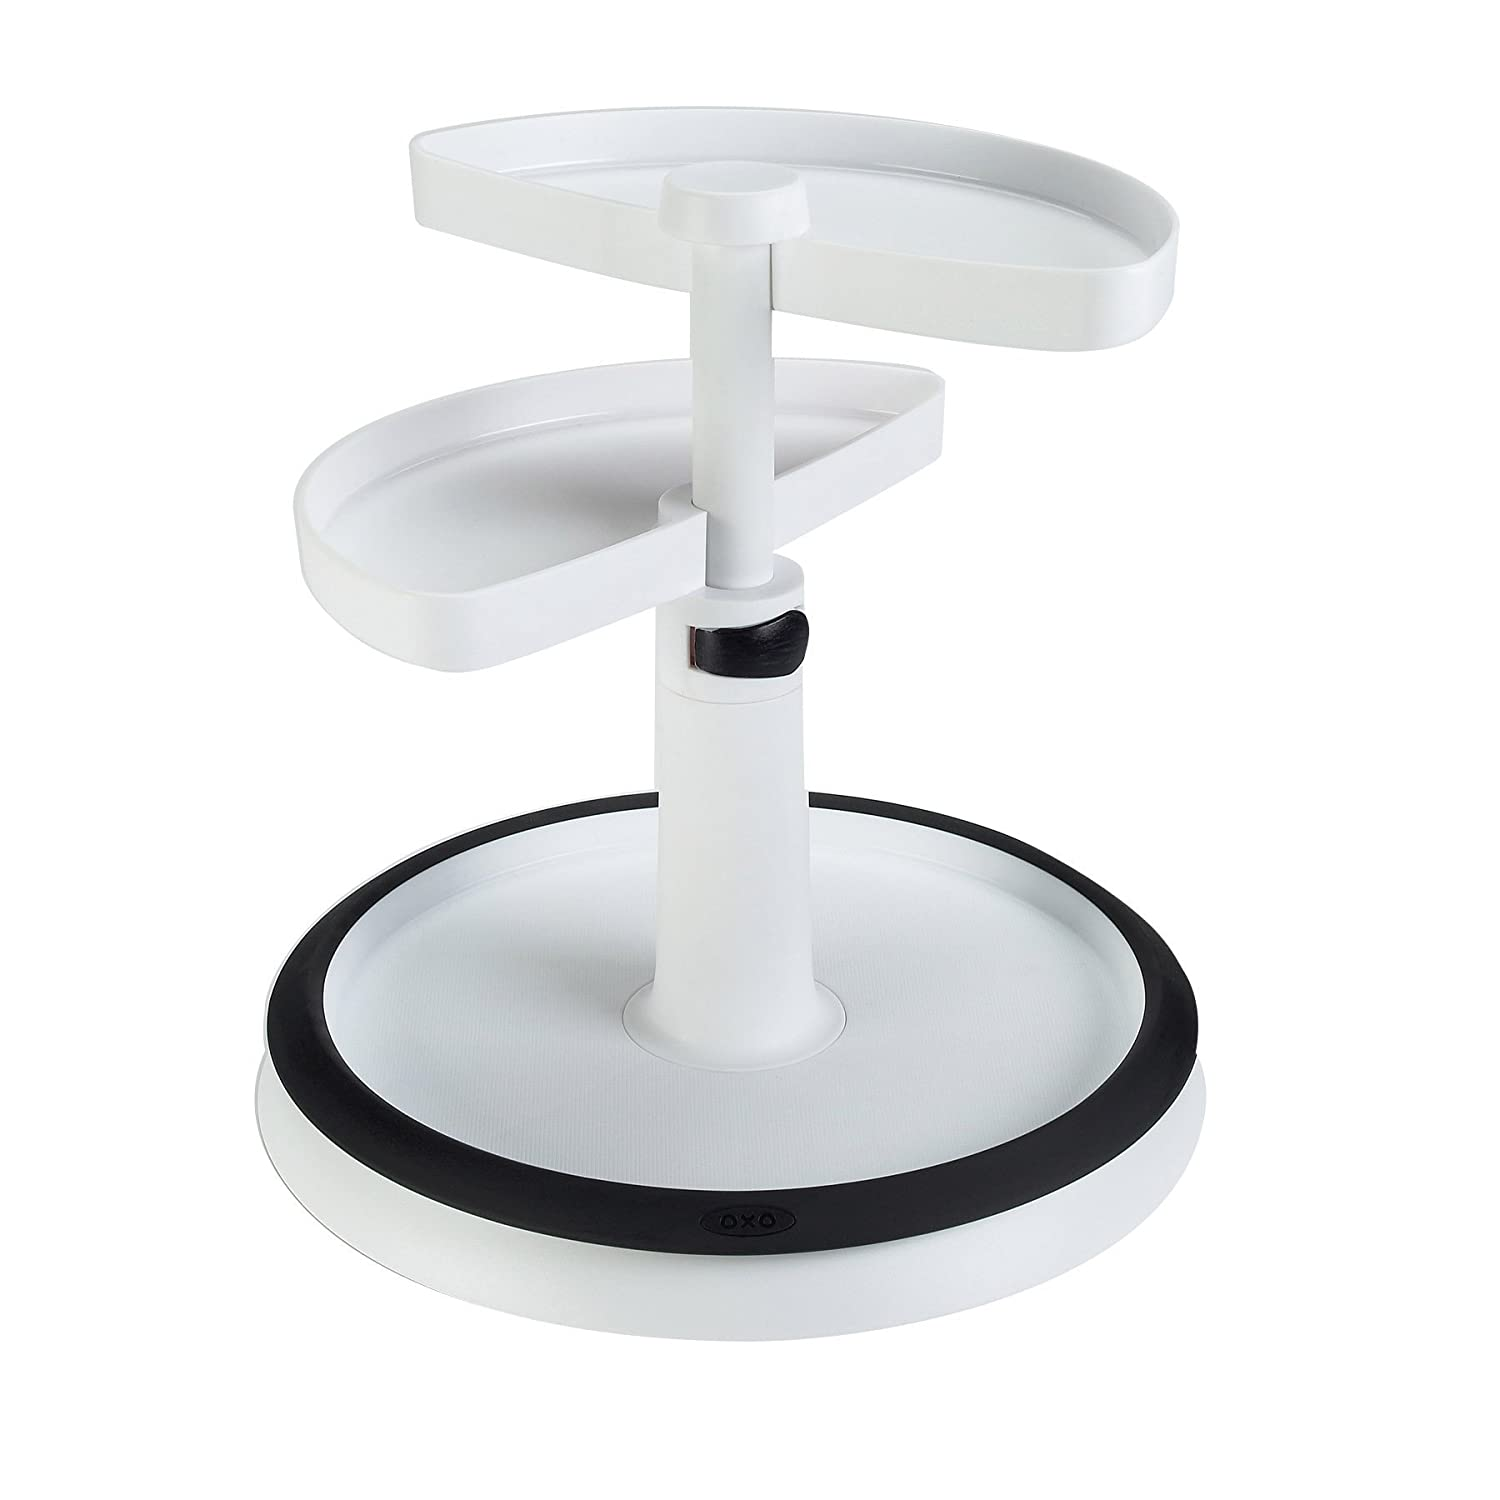 Amazon.com   OXO Good Grips 2 Tier Adjustable Turntable With Divided Top  Tier   Oxo Spice